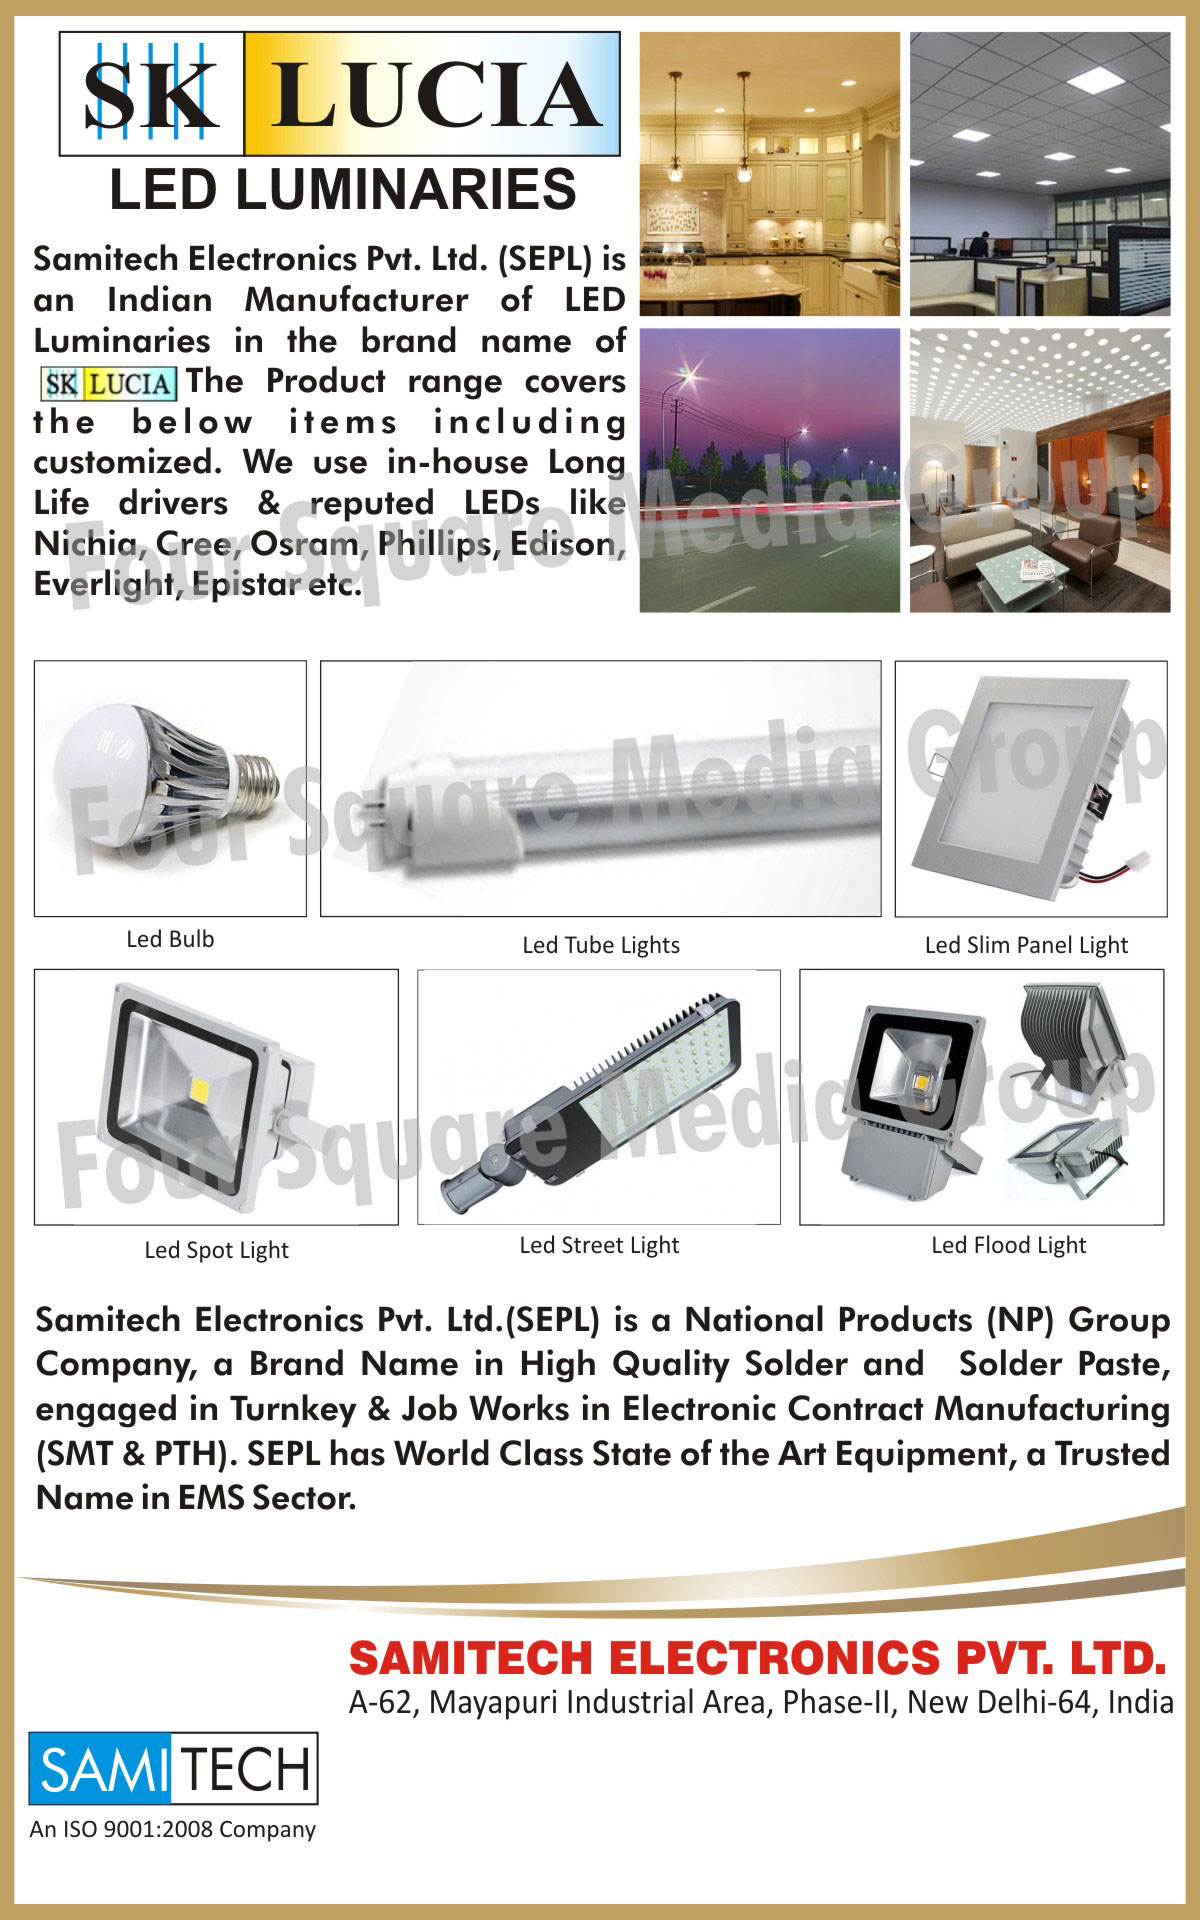 Led Lights, Led Luminaries, Led Bulbs, Led Tube Lights, Led Slim Panel Lights, Led Spot Lights, Led Street Lights, Led Flood Lights